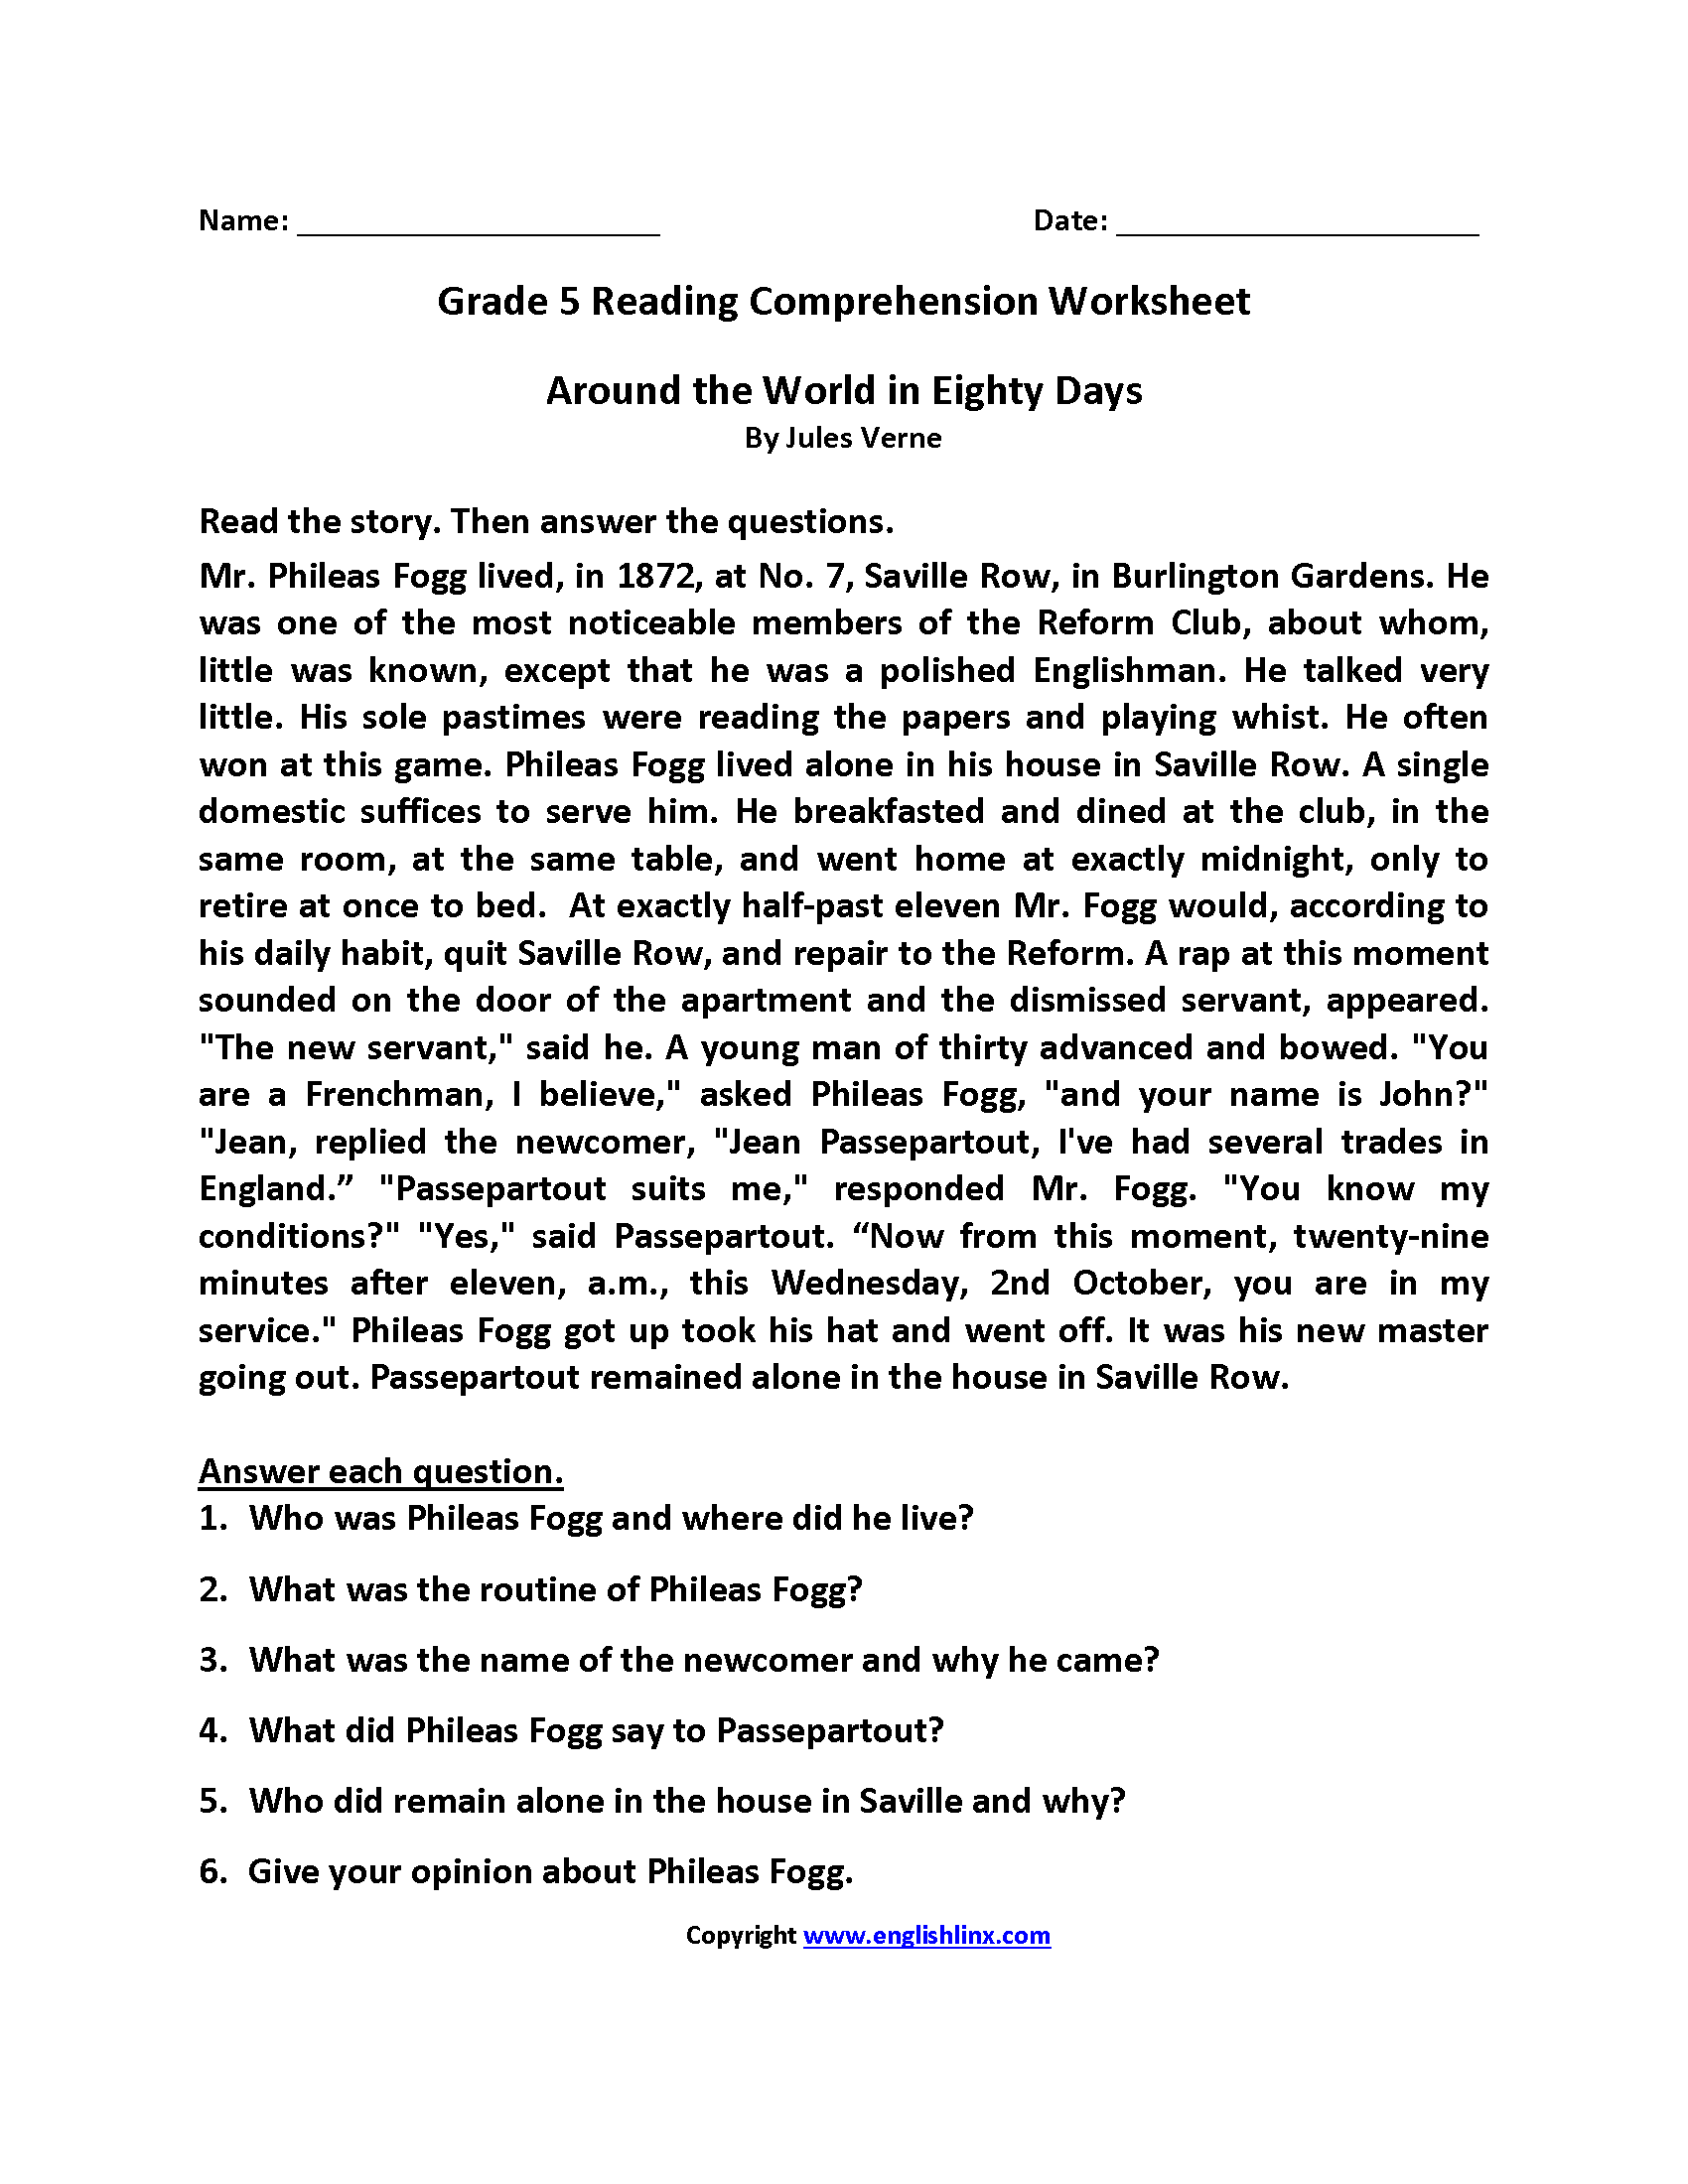 Worksheets Comprehension Worksheets For Grade 5